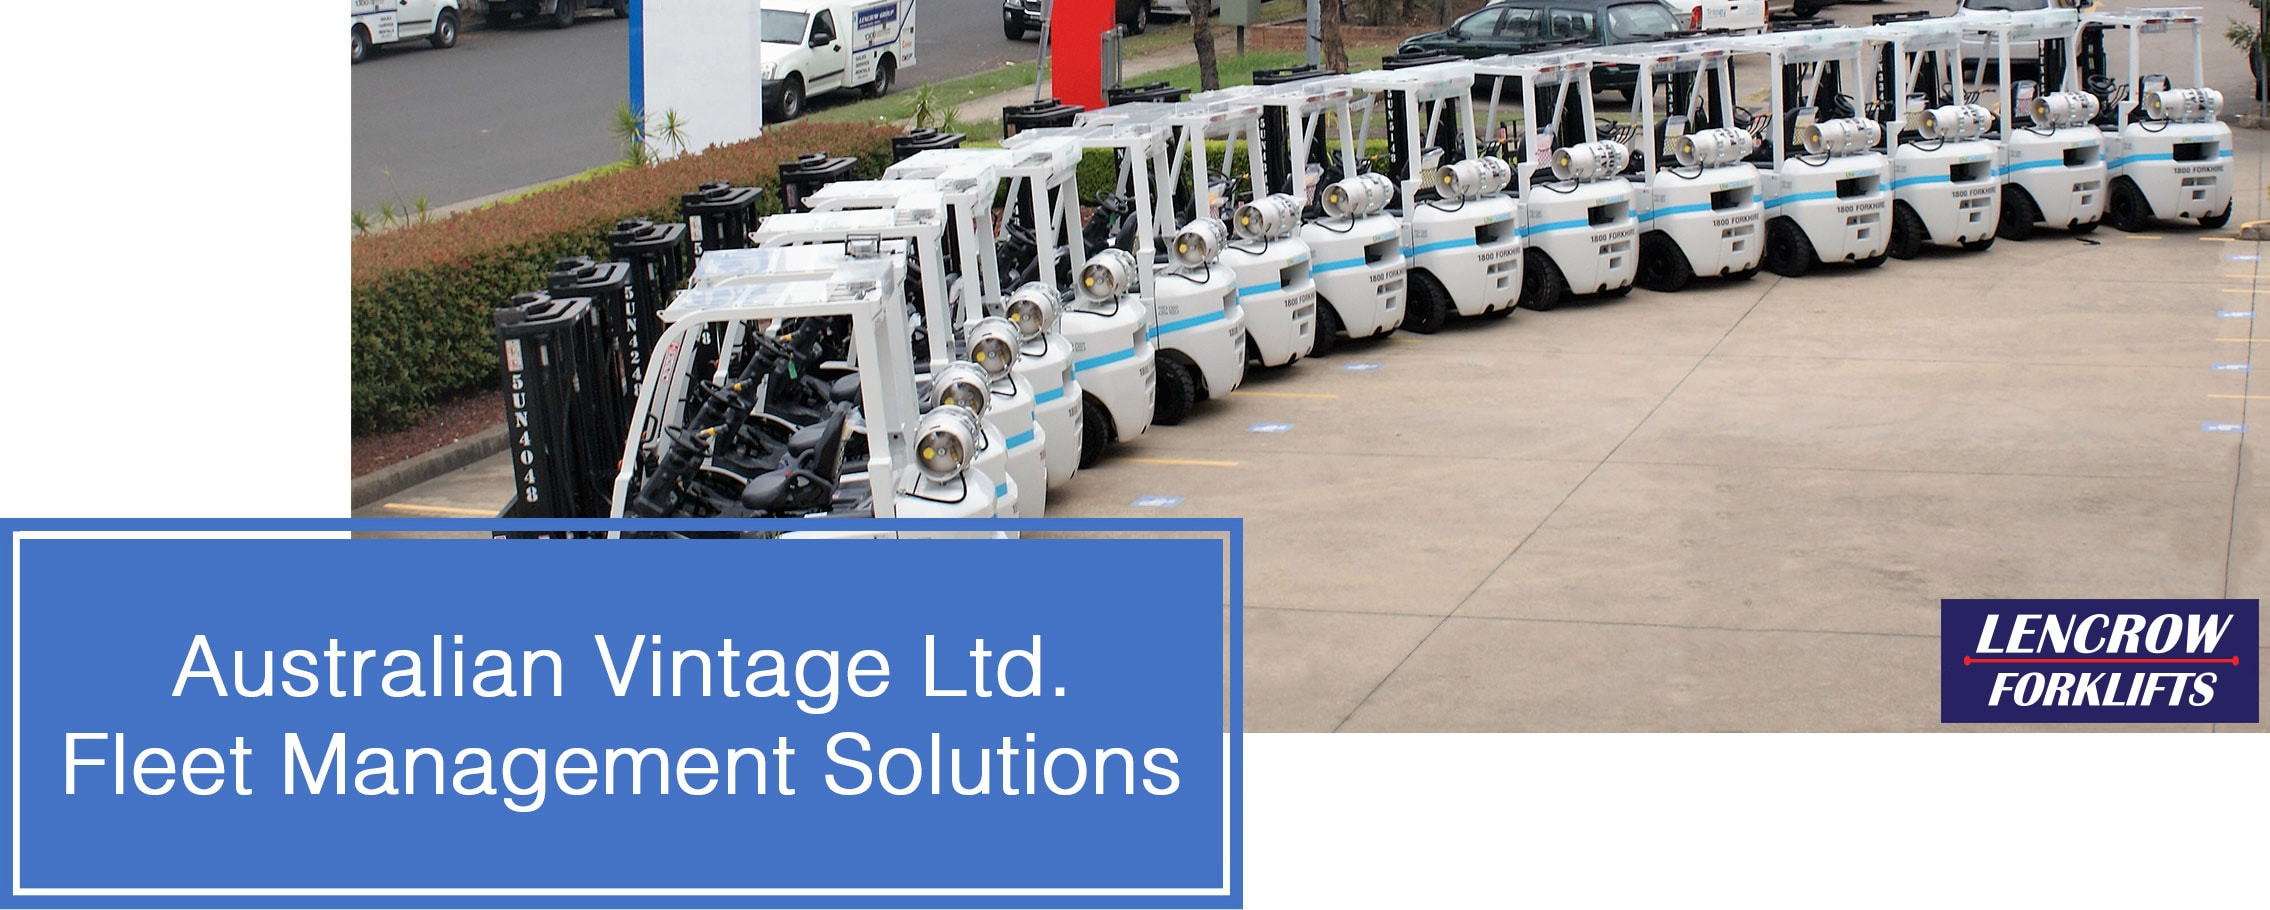 Australian Vintage Ltd. Fleet Management Solutions